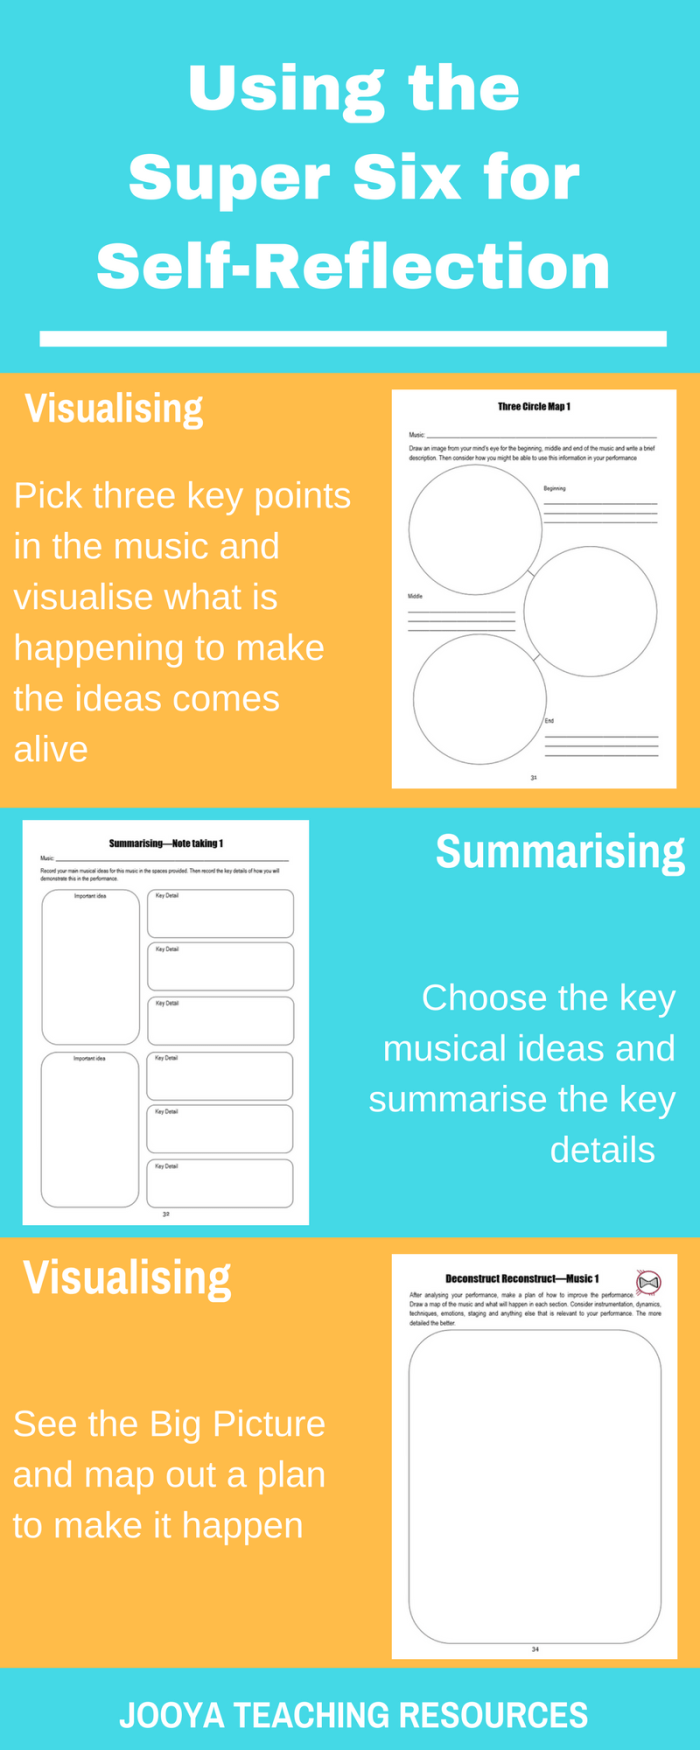 Surprising Ways to use the Super Six blog post from Jooya Teaching Resources. Get tips and tricks on how the Super Six can be used in interesting ways to improve student musical performances.